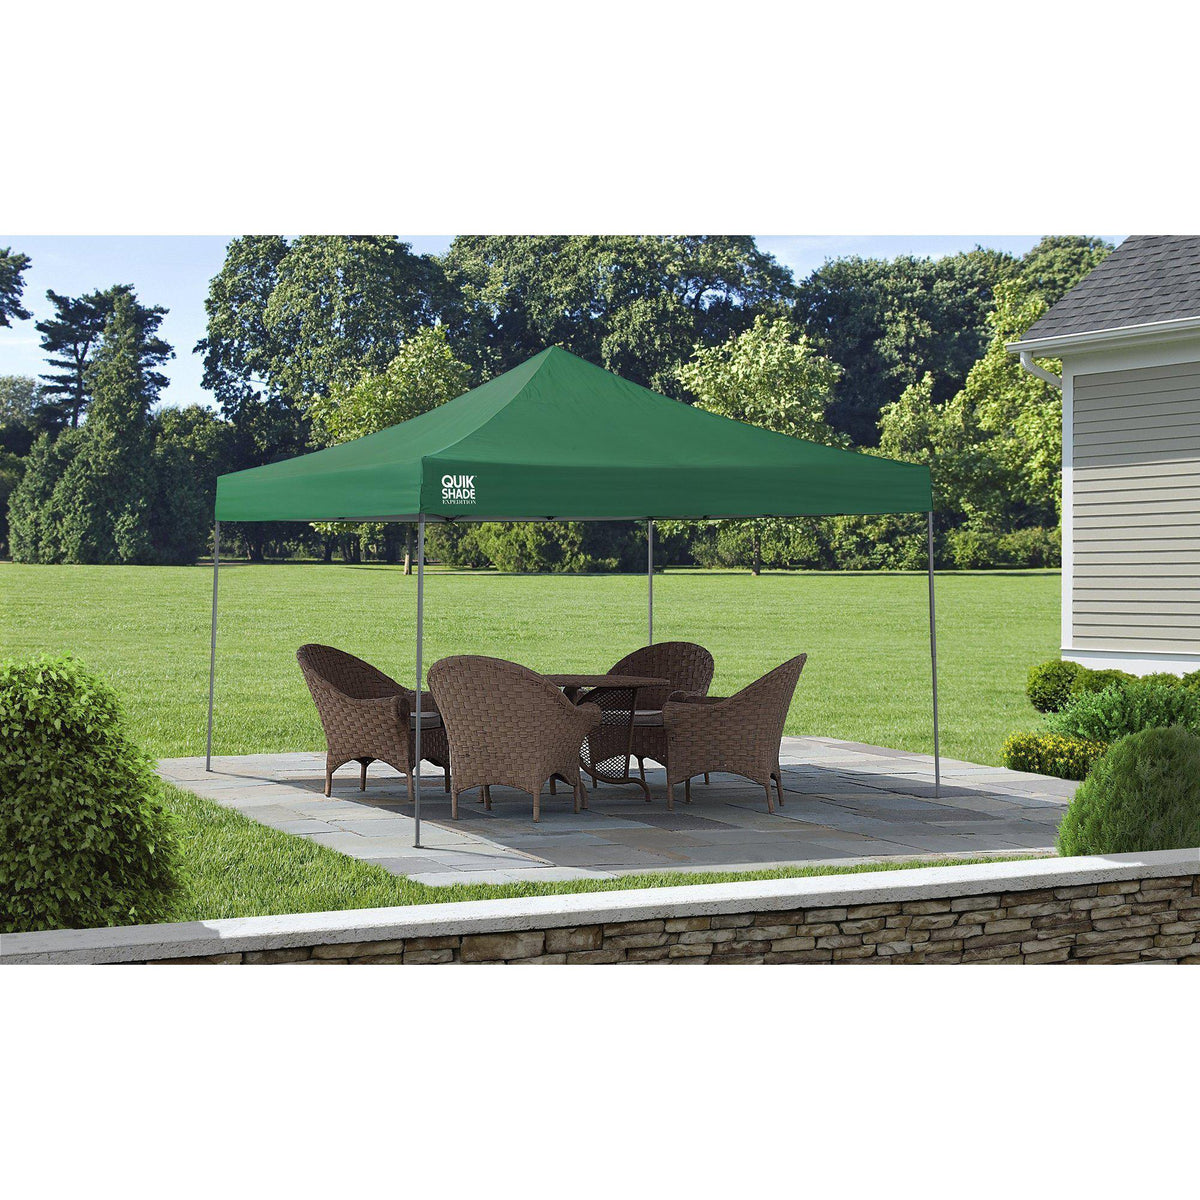 Quik Shade Expedition 12 x 12 ft. Straight Leg Canopy, Green